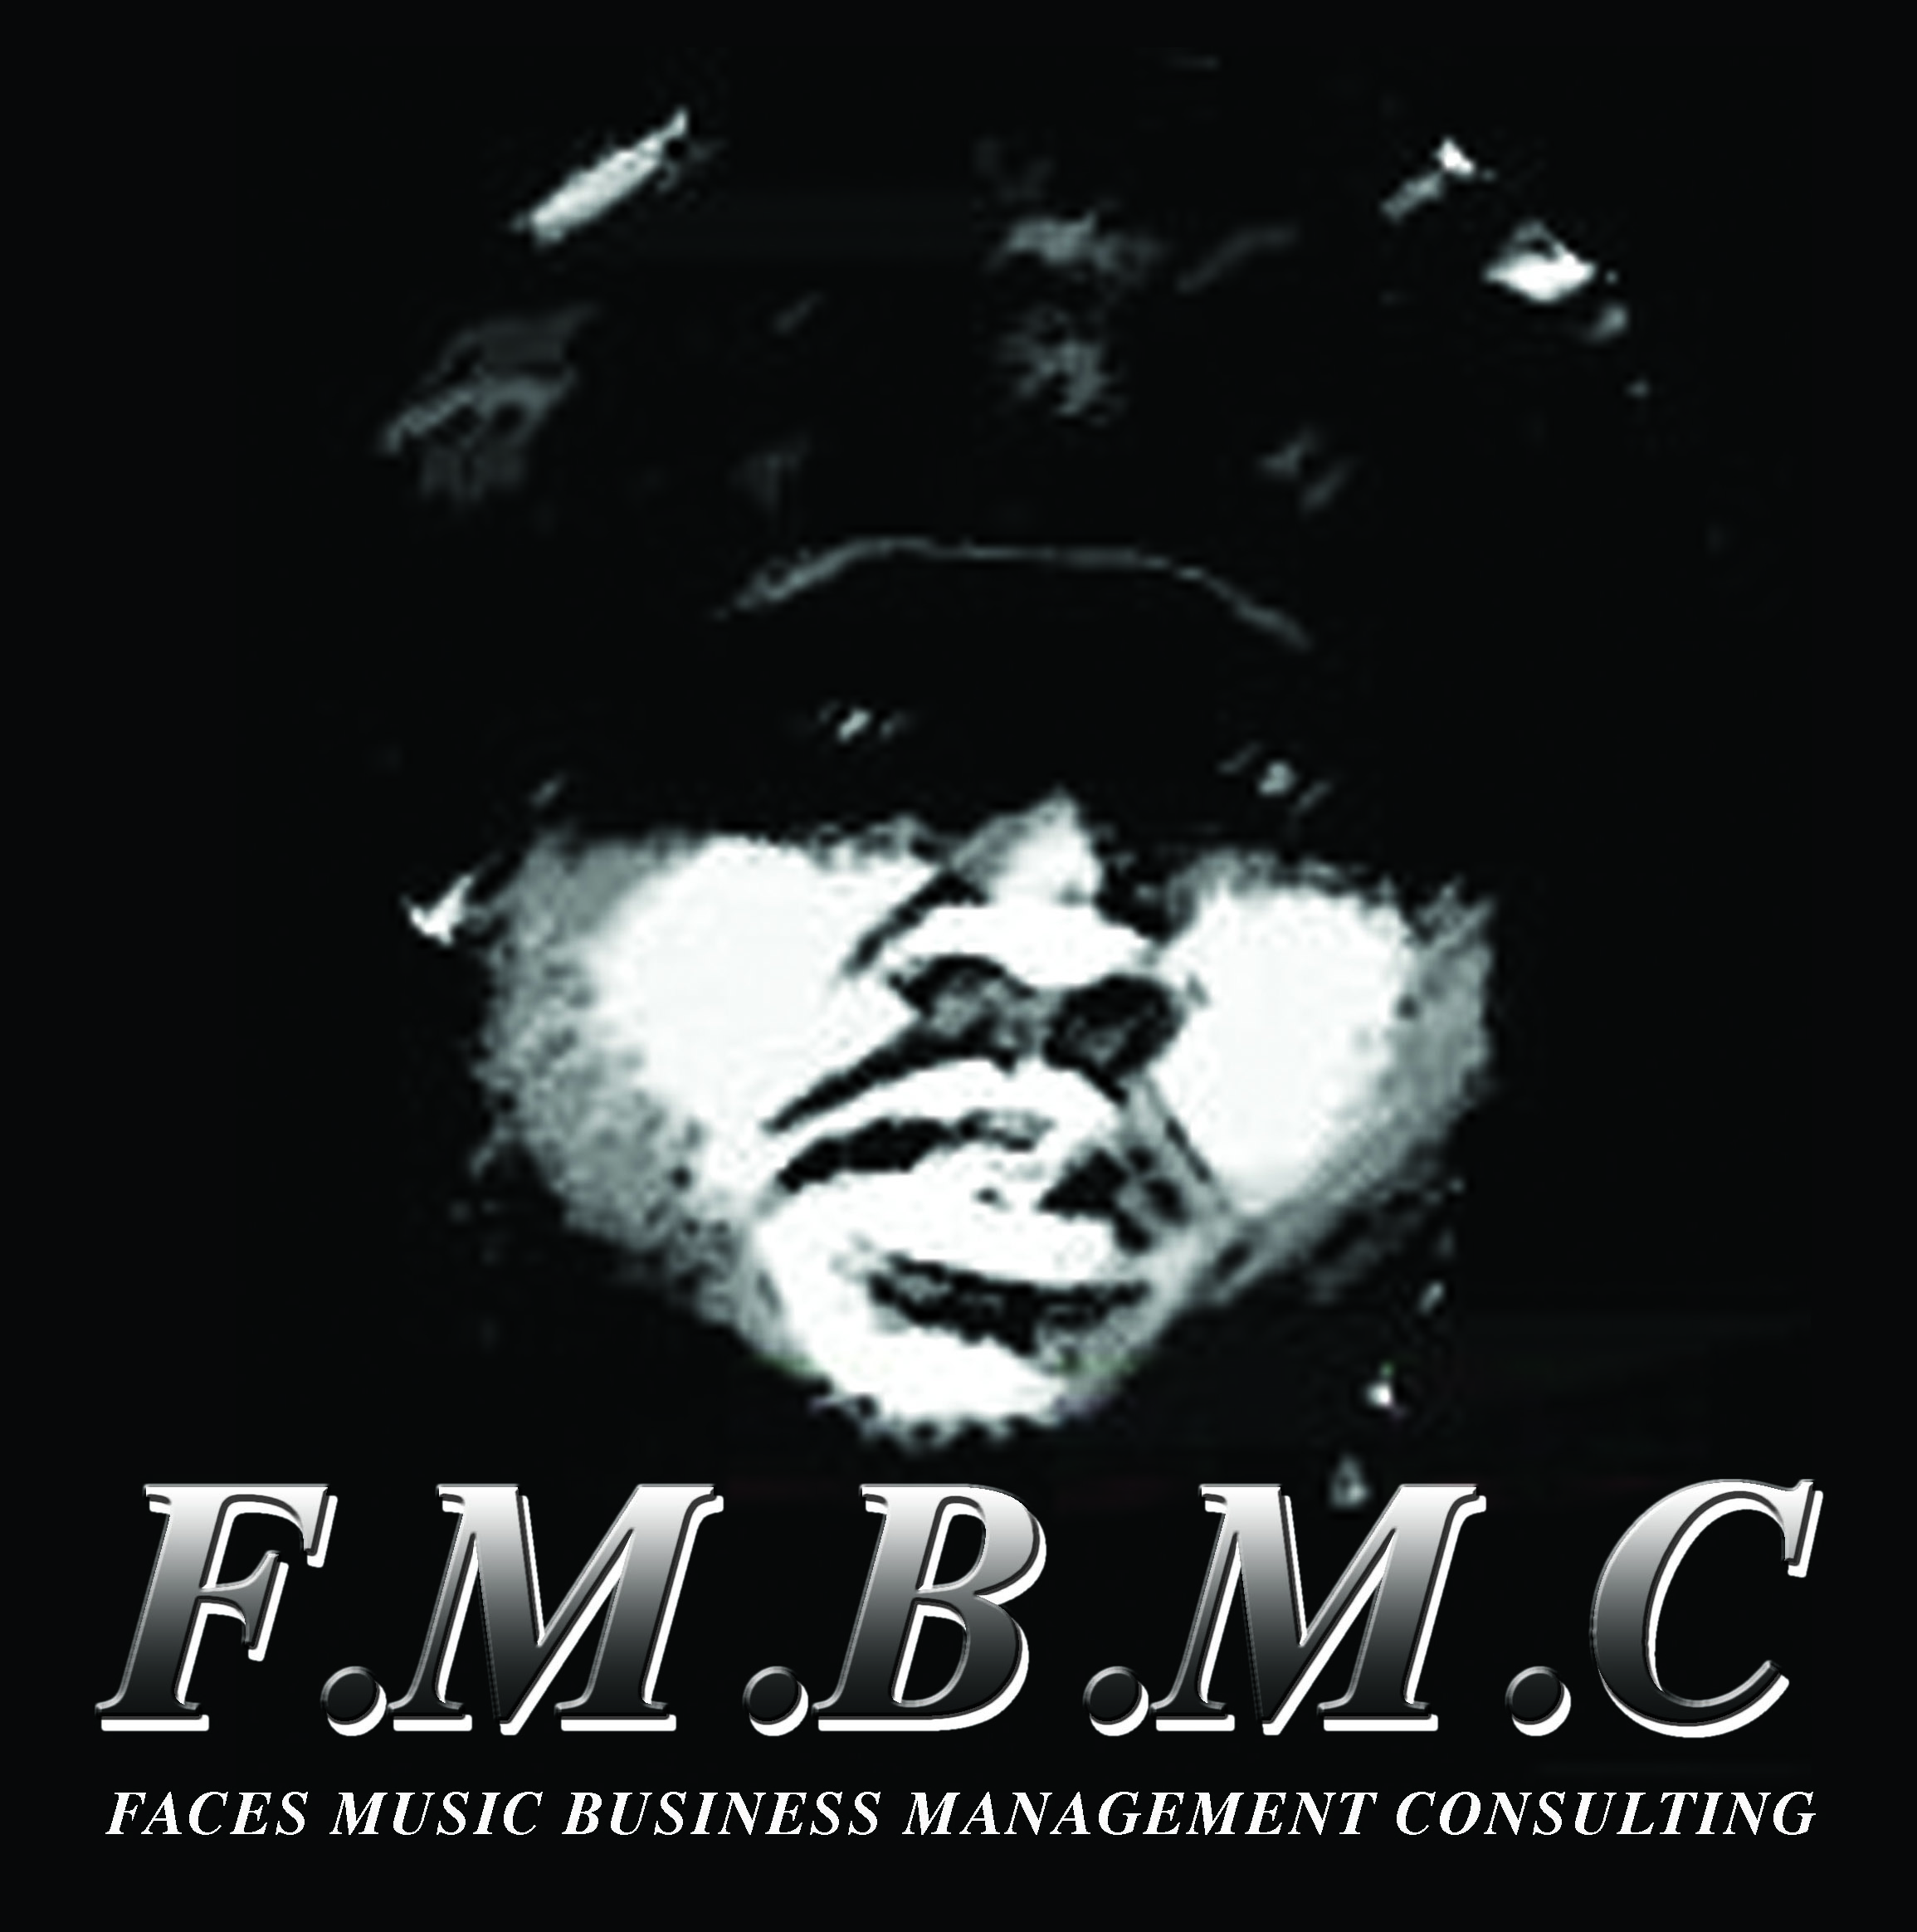 Business Management Consulting : Faces music business management consulting big in da